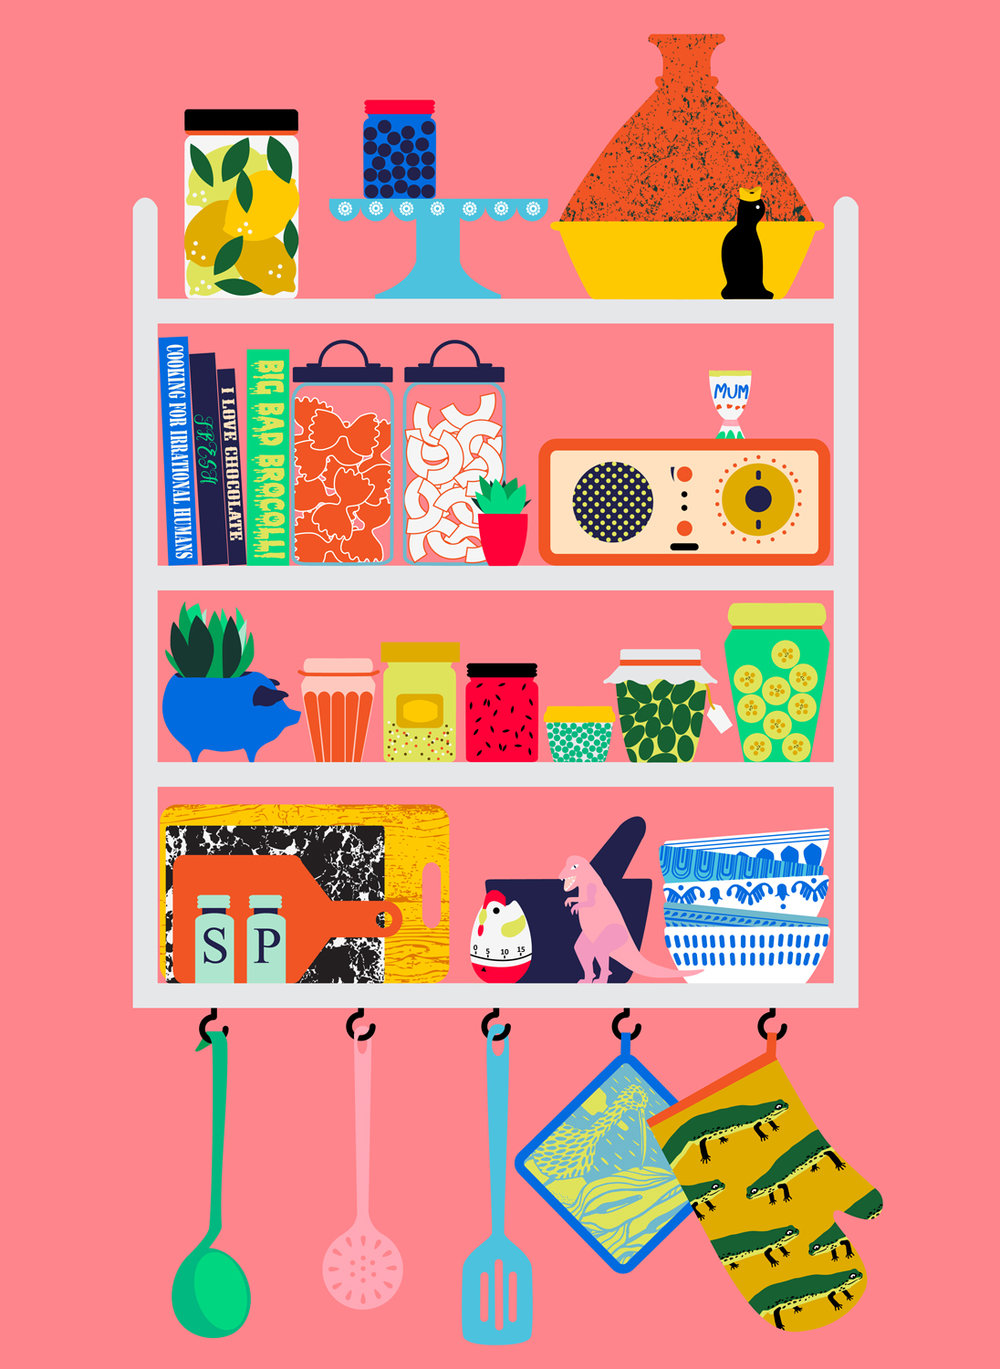 Kitchen shelf digital illustration